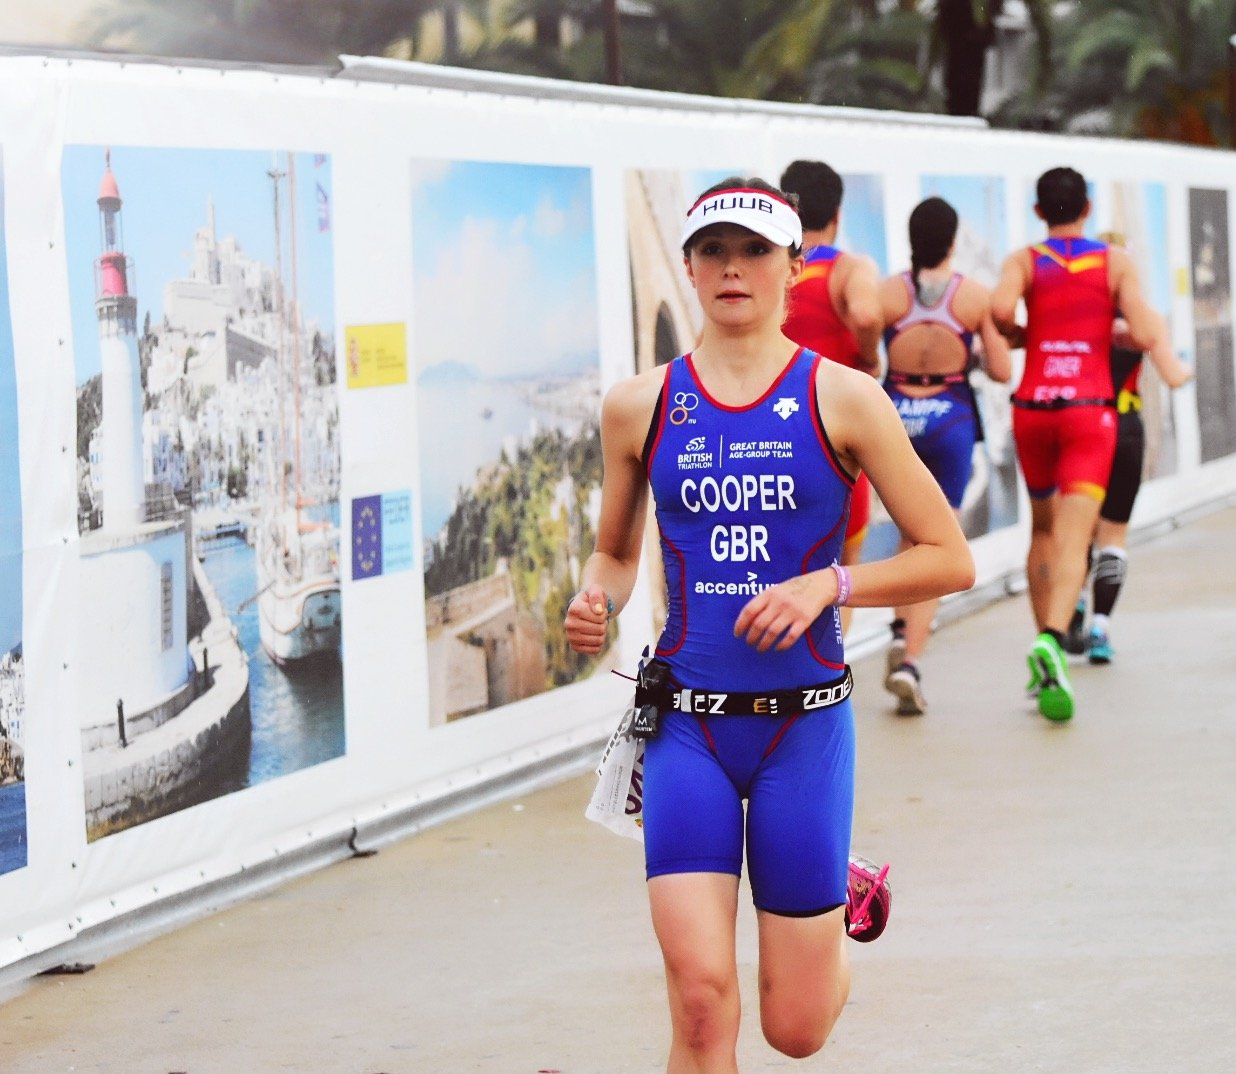 Meet our Ambassador Jem: The Ballerina to Triathlete